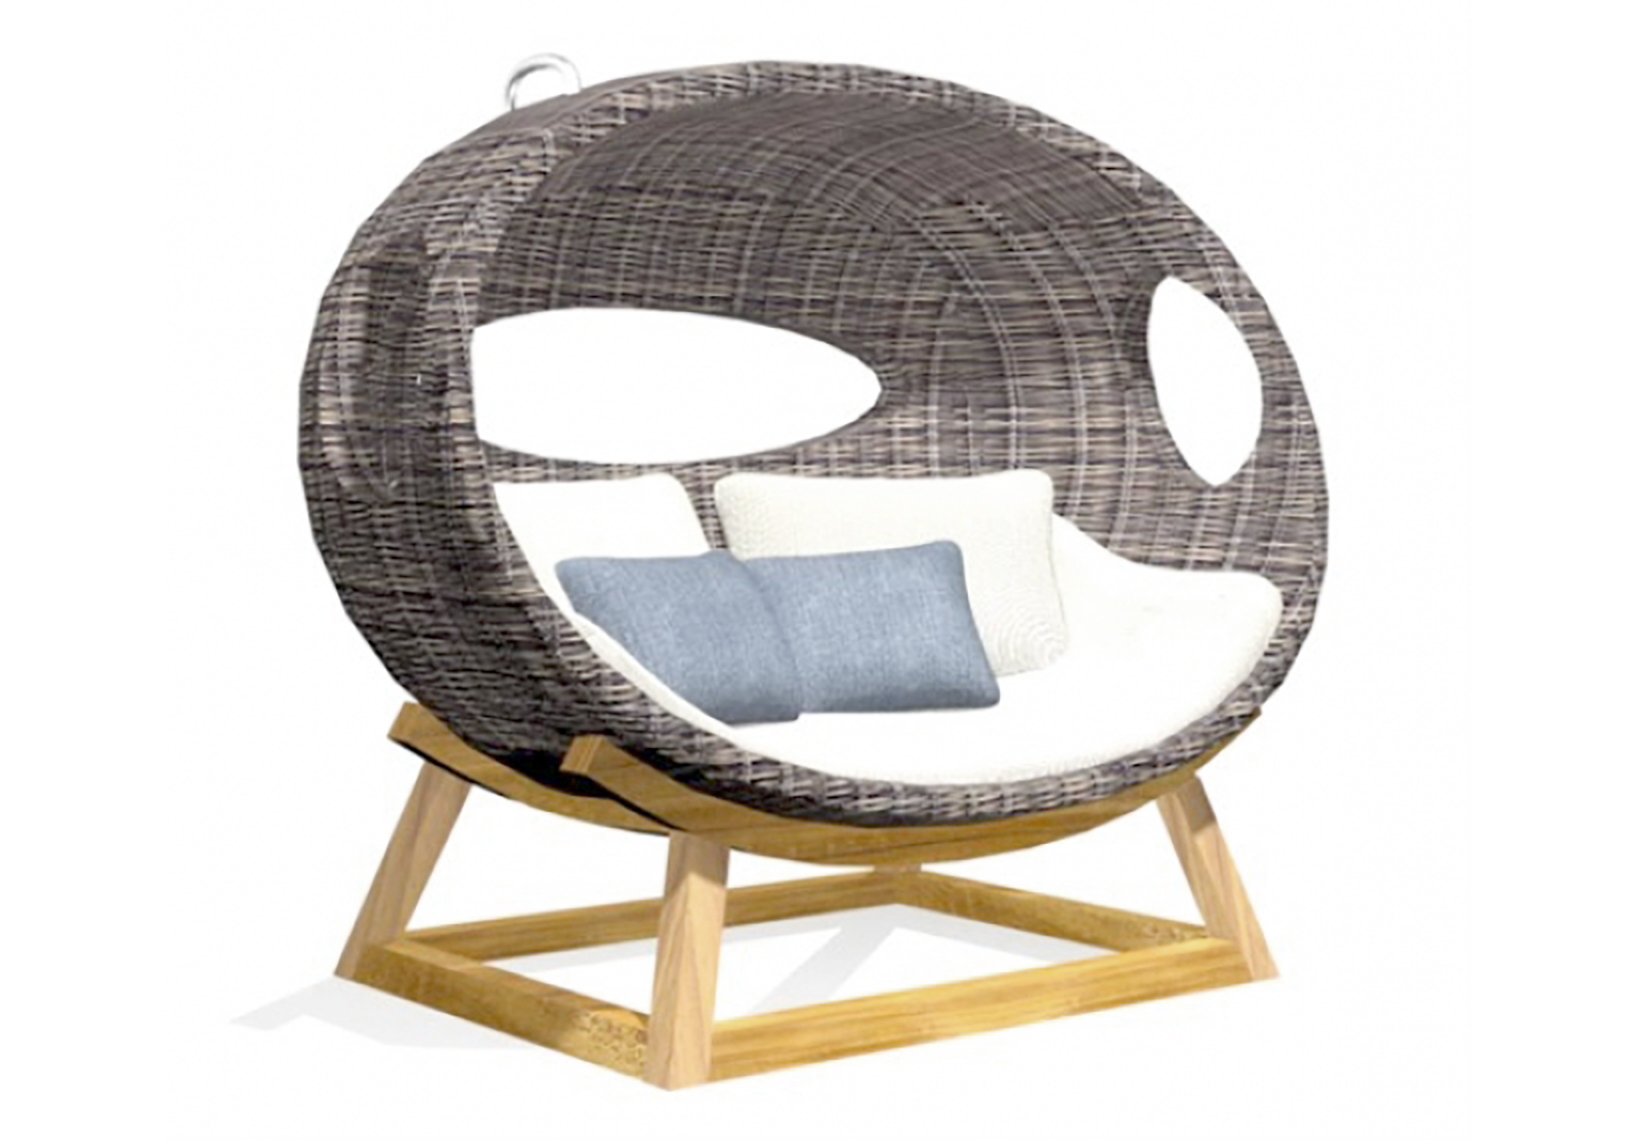 Onda Swing Lounge Chair with Stand